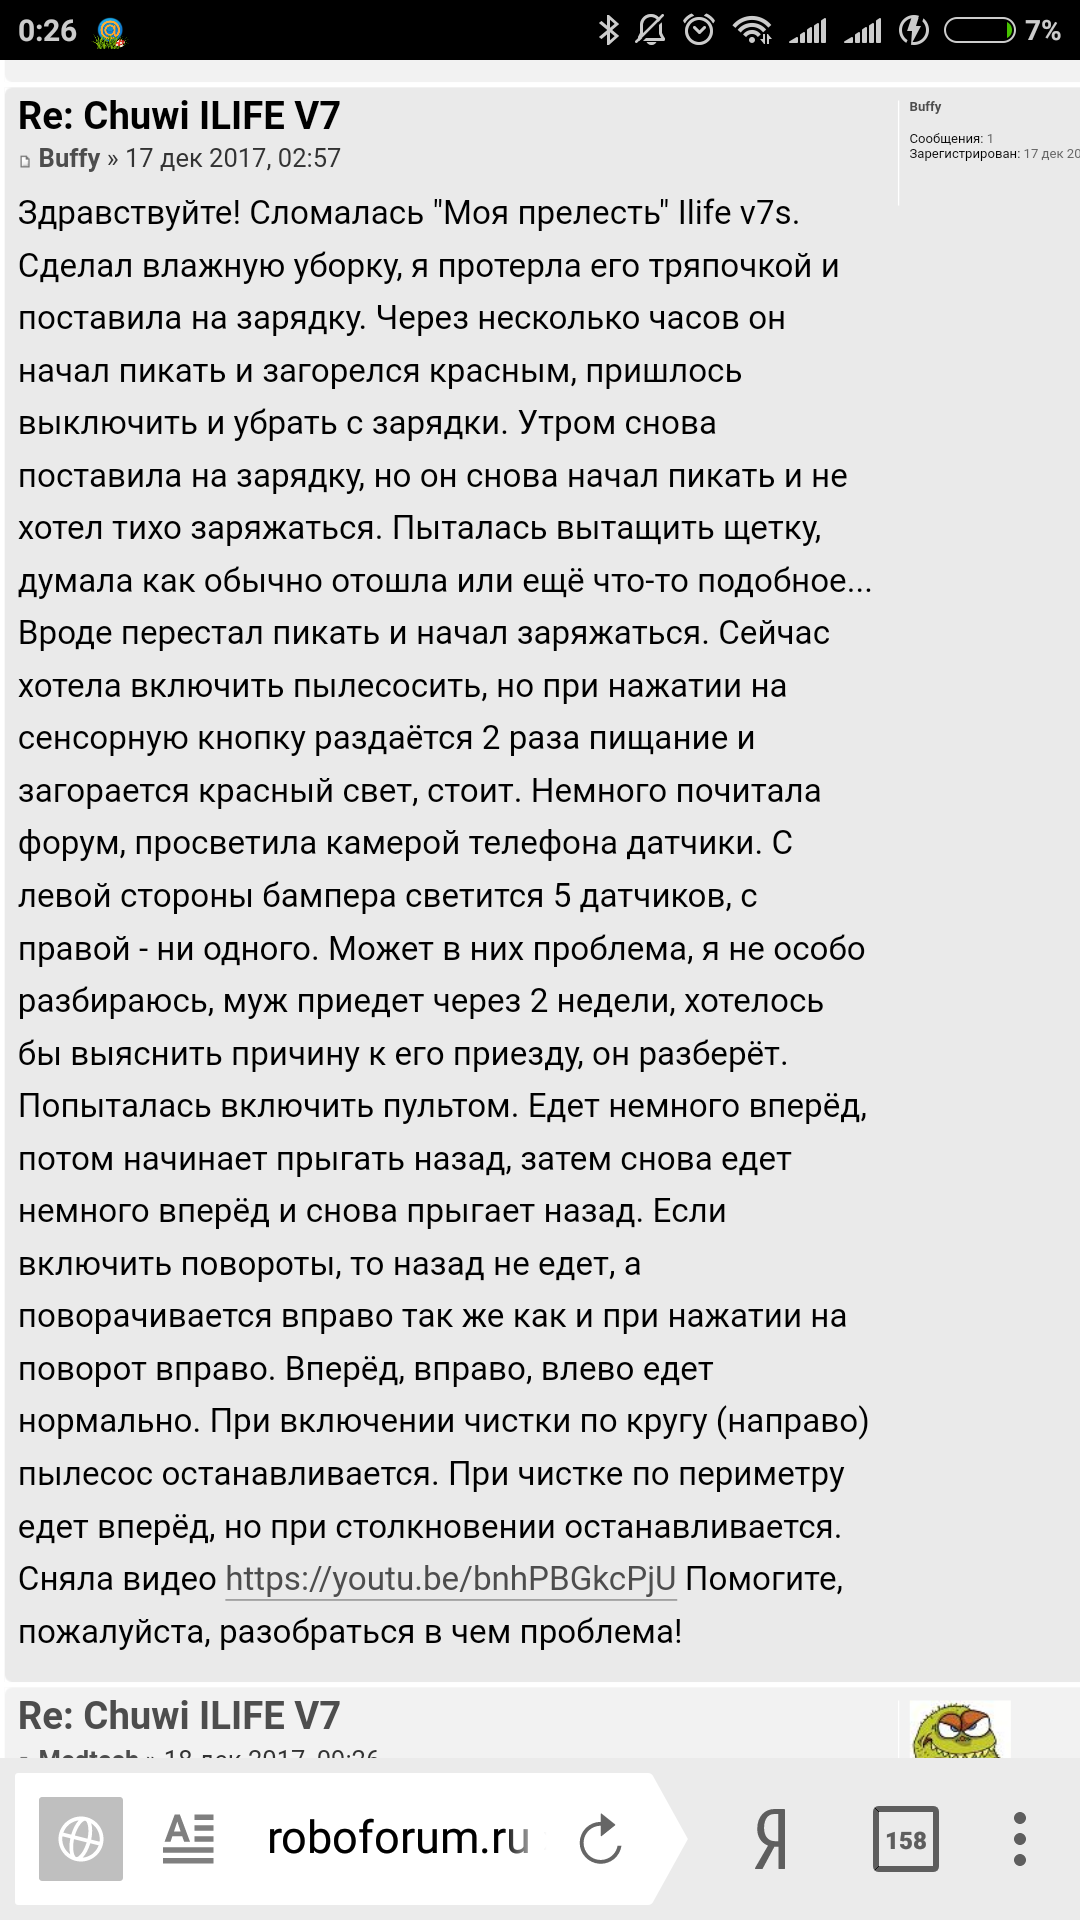 Screenshot_2018-03-26-00-26-54-331_com.yandex.browser.png